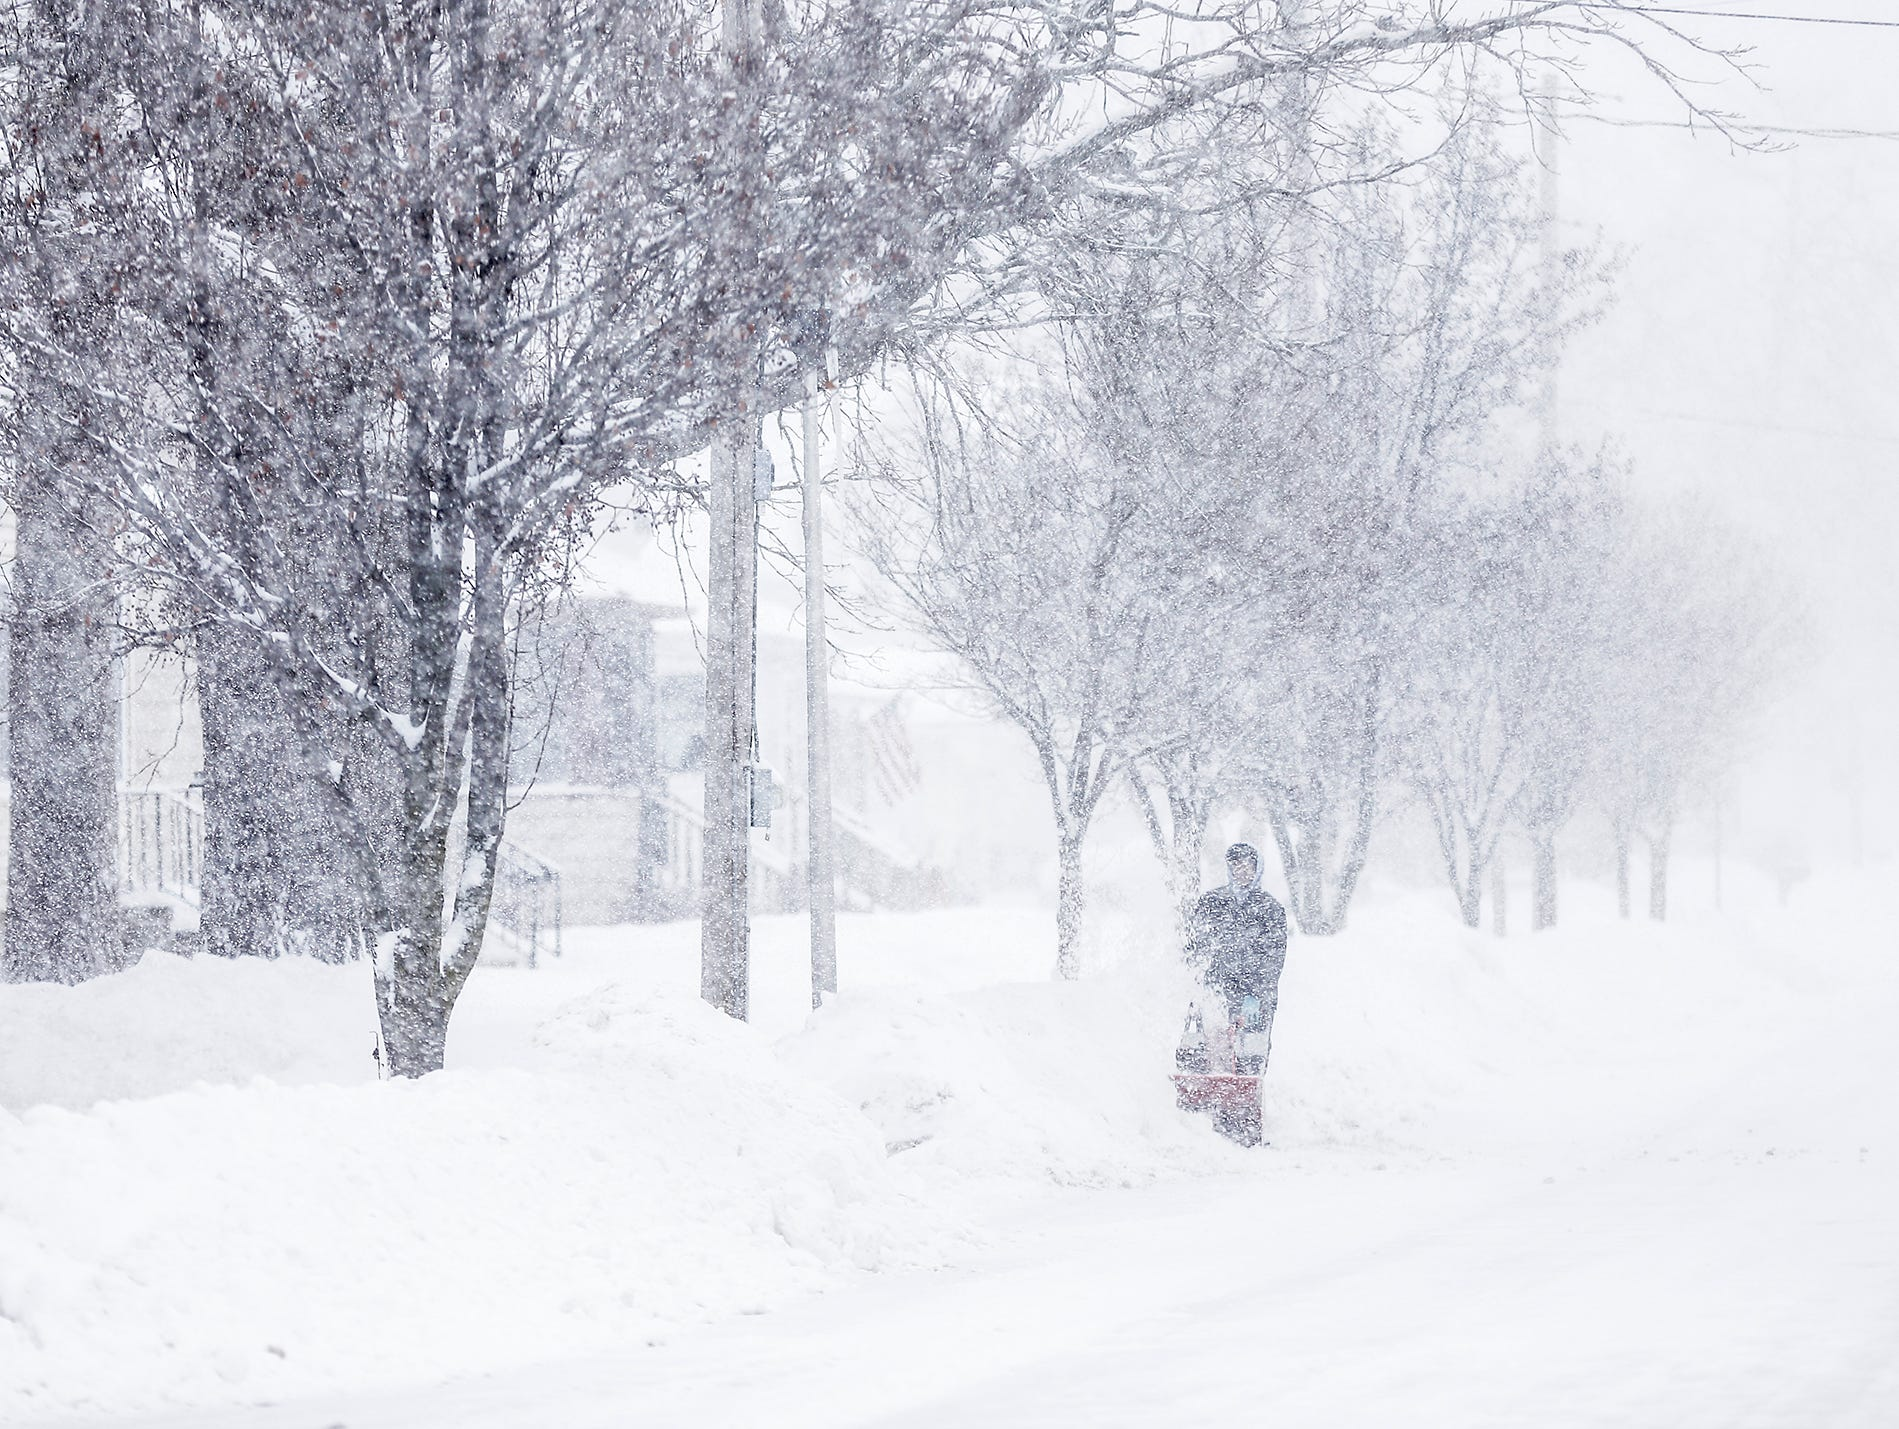 Aerion Hojem snowblows his Seymour Street driveway during a winter storm Tuesday, Feb. 12, 2019, in Fond du Lac, Wis. A winter storm warning was issued for the area.